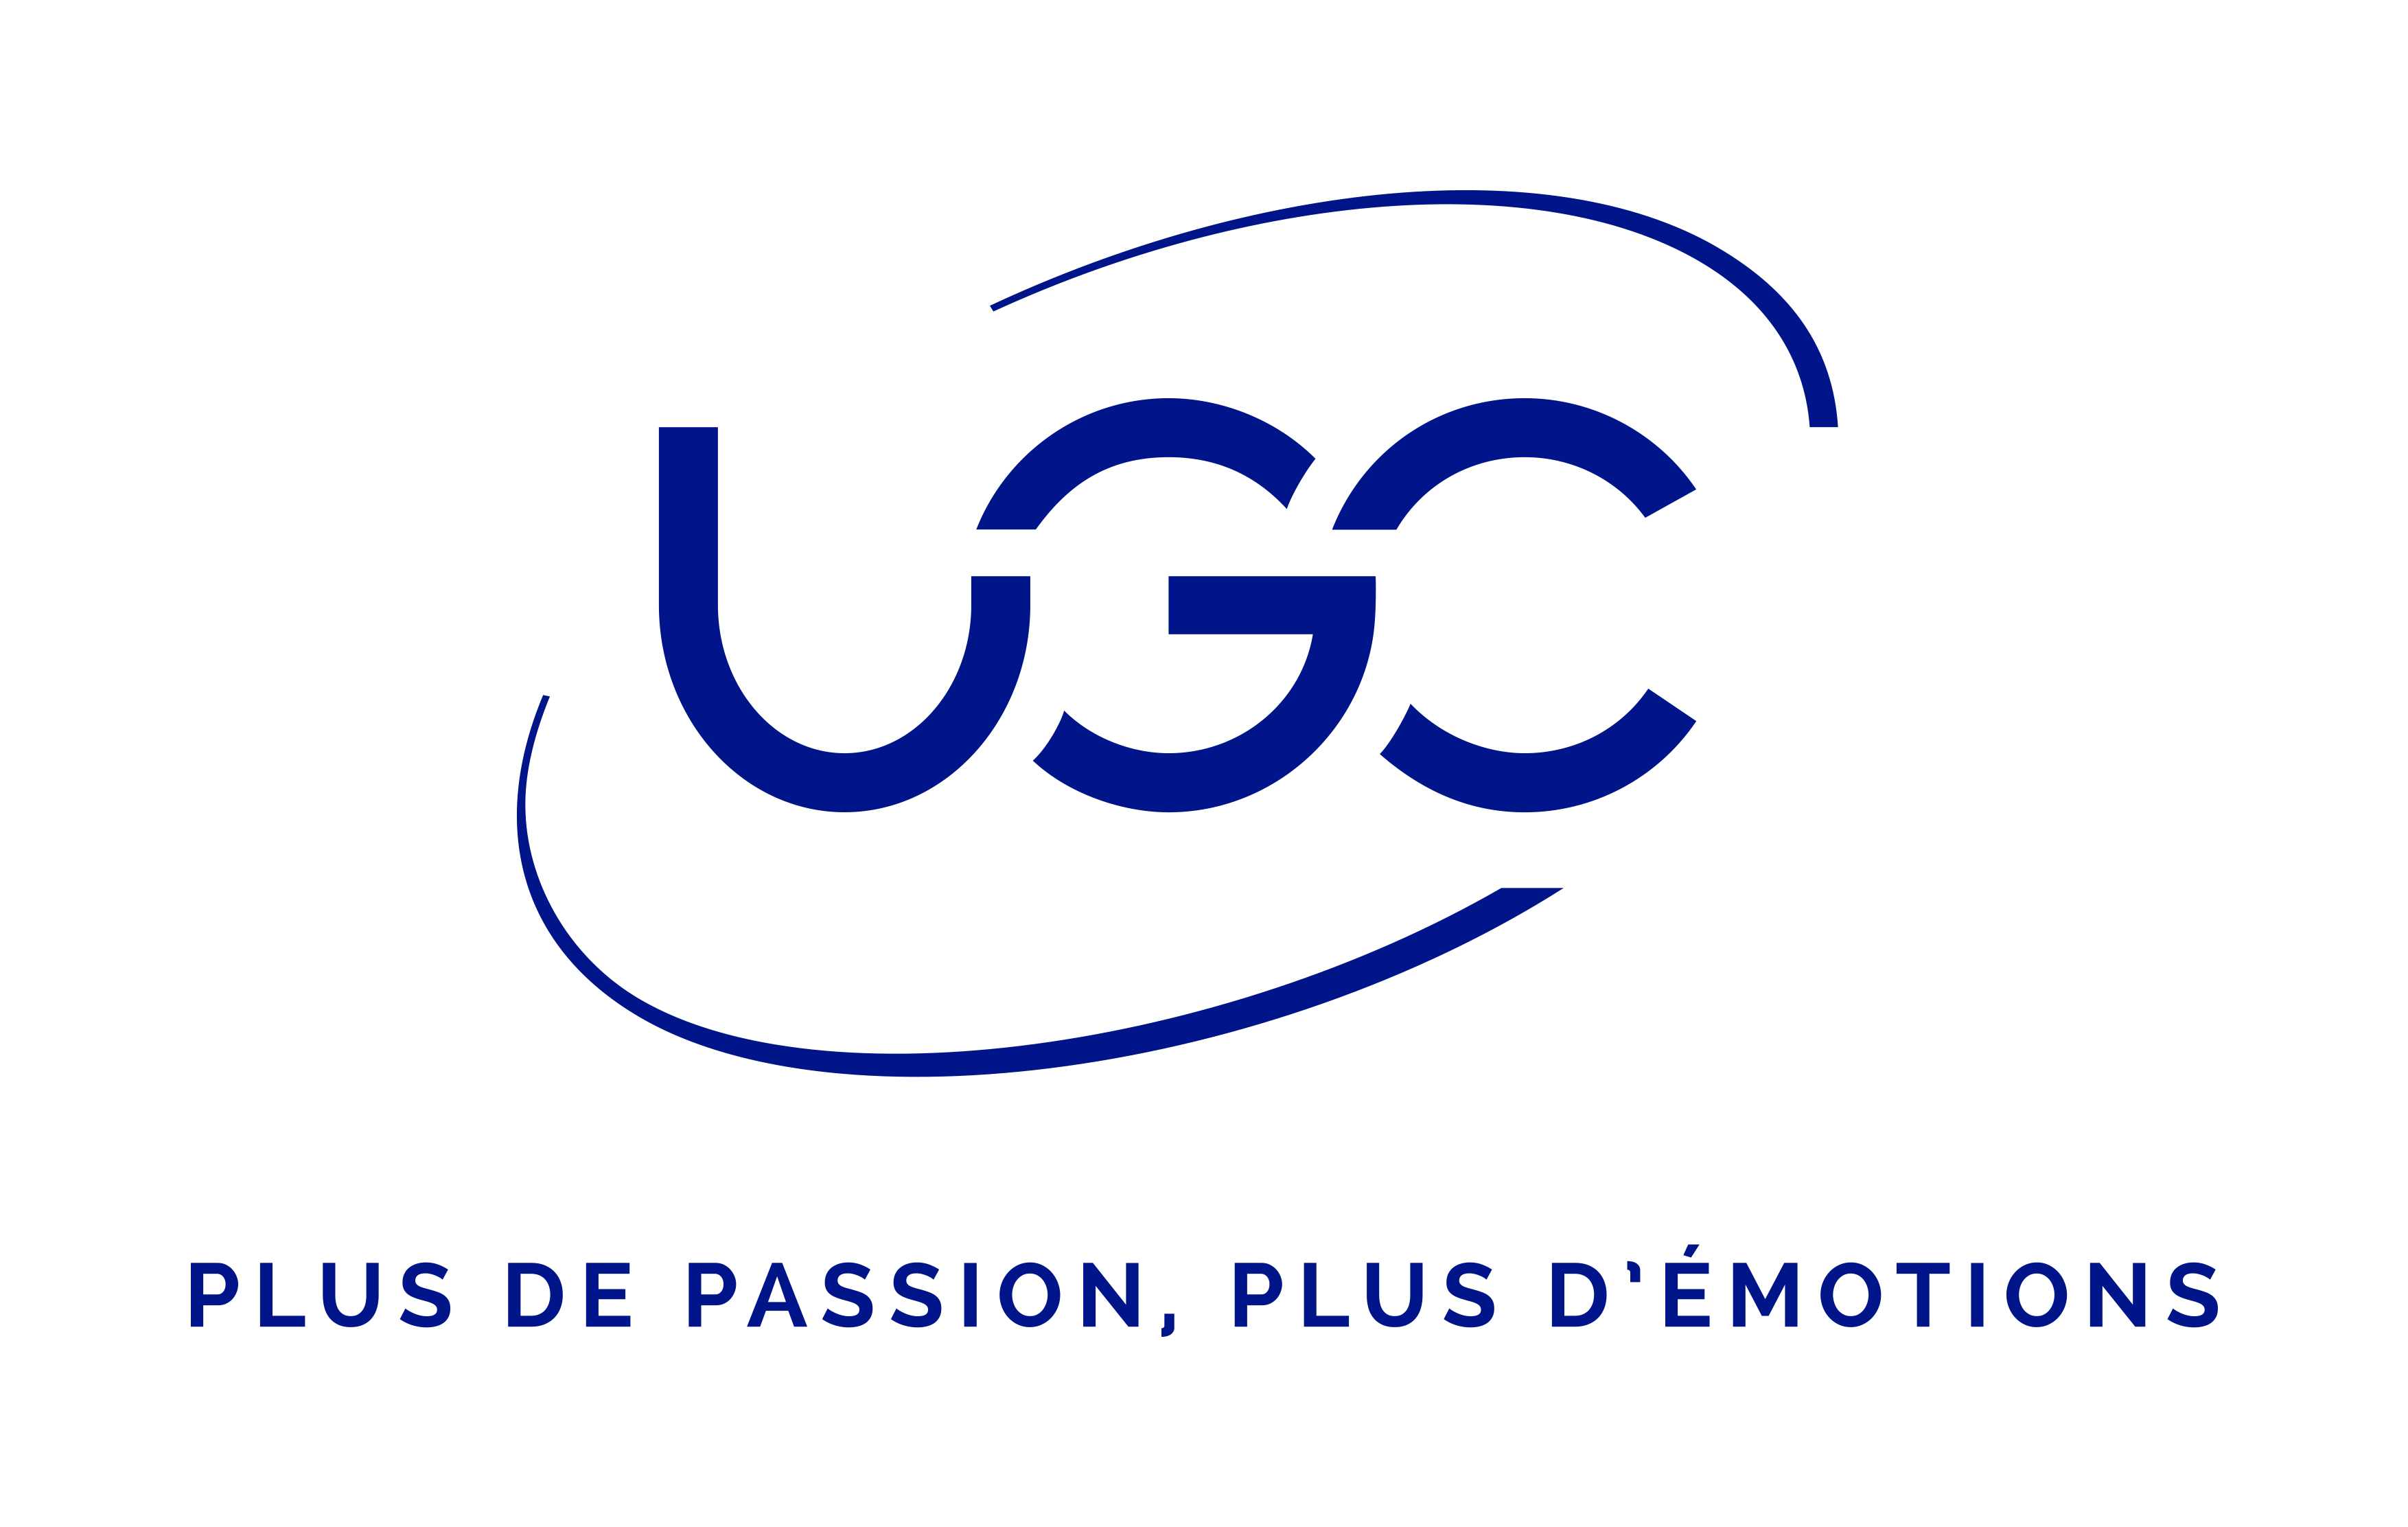 UGC O'Parinor